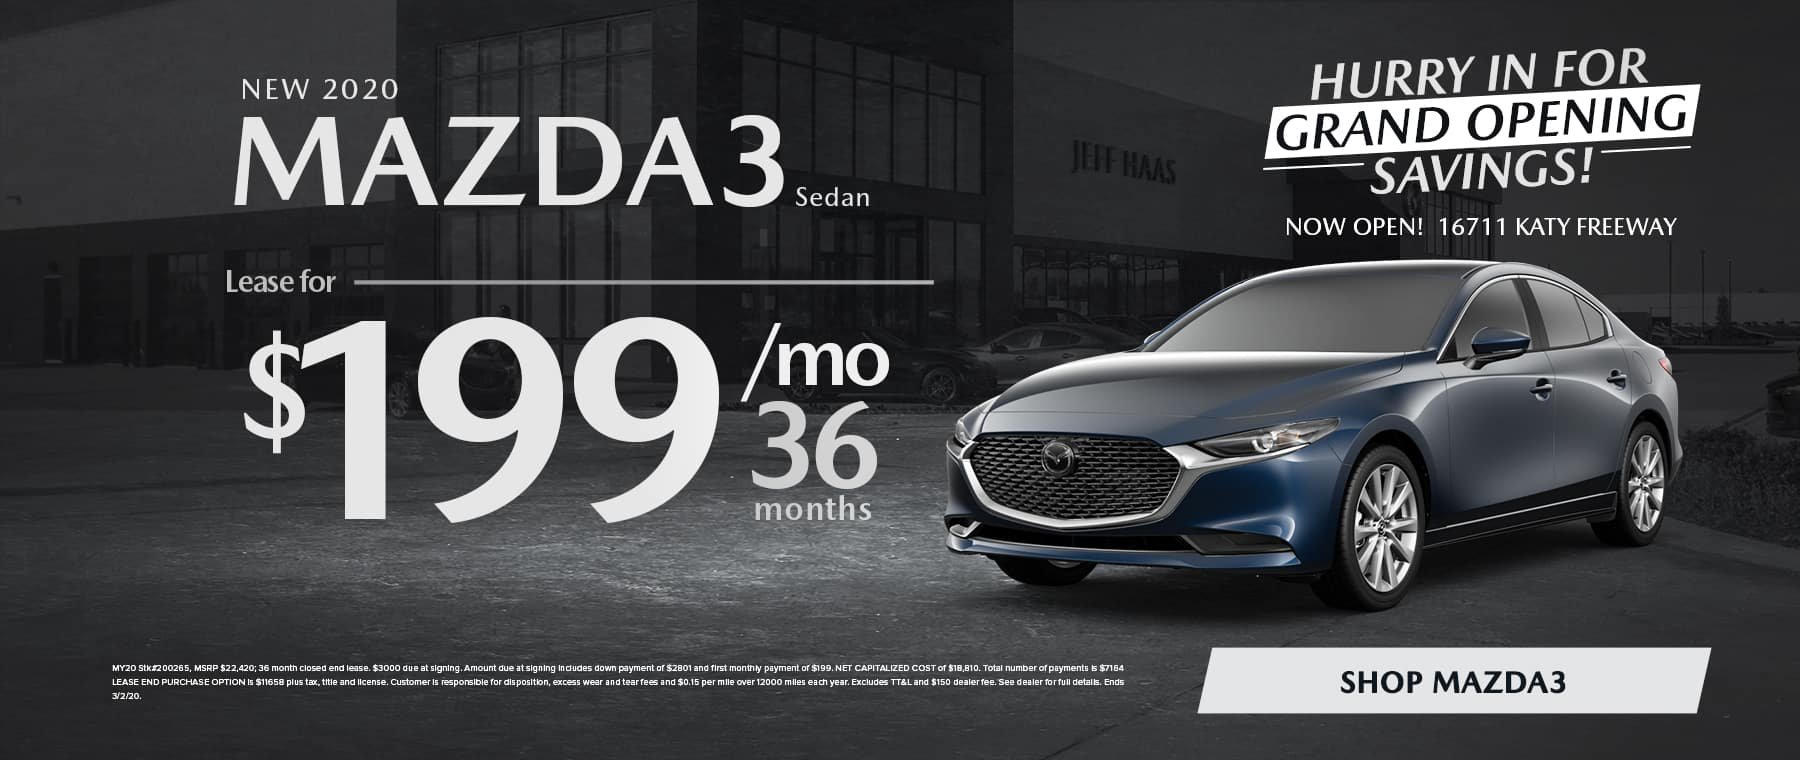 New 2020 MAZDA3 Sedan Lease for $199/mo for 36 mo